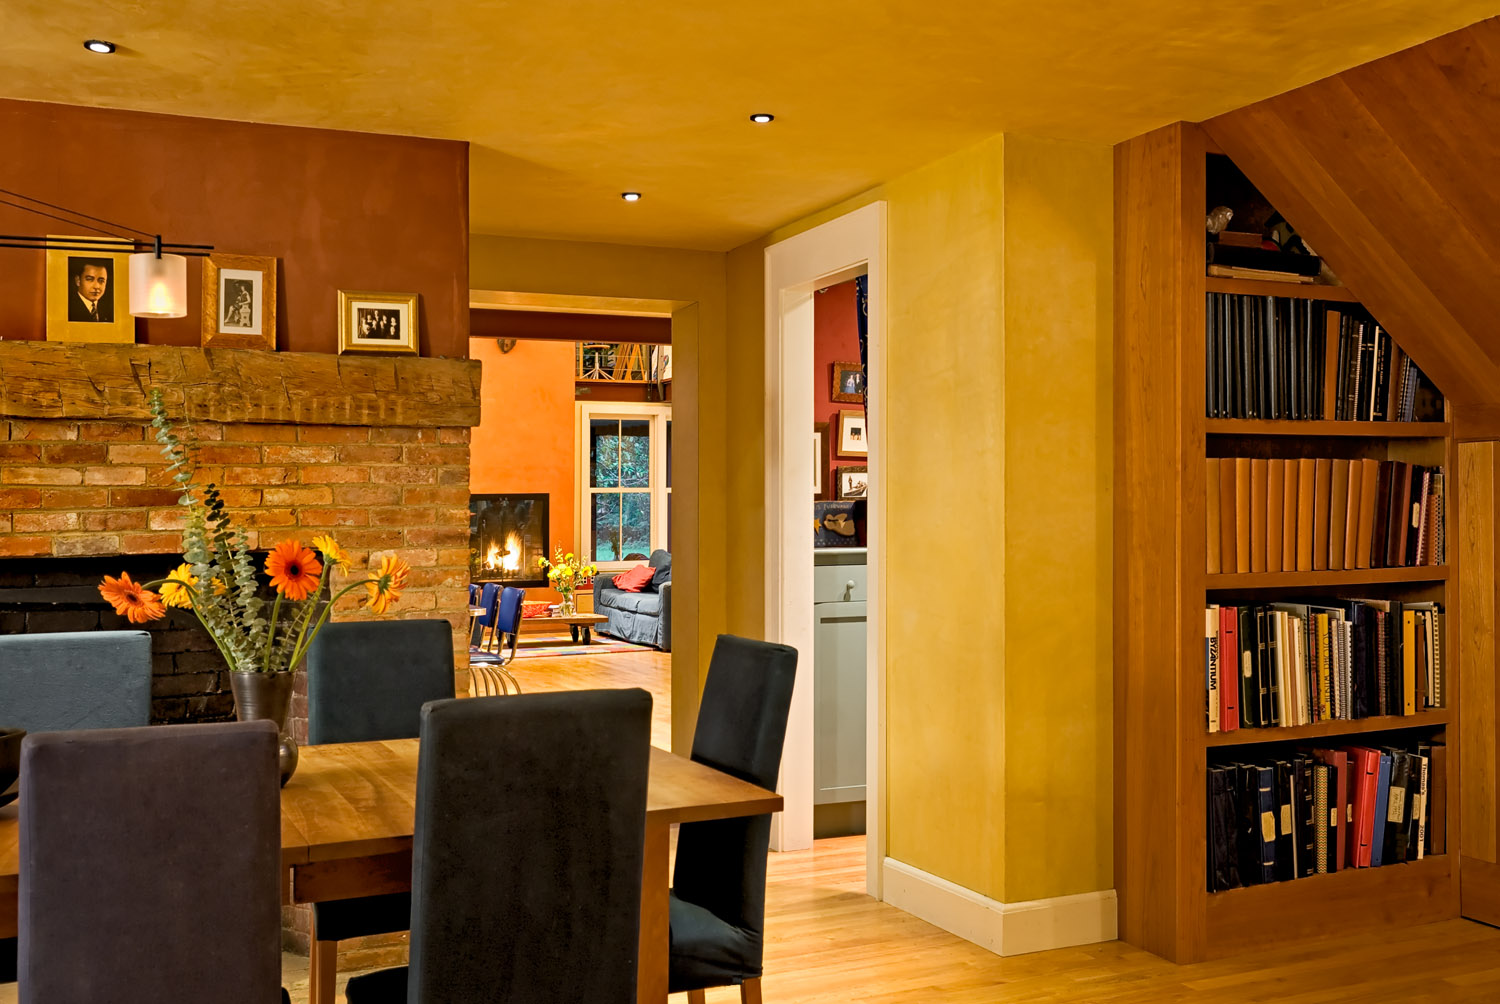 08 Dining room showing bookcase.jpg